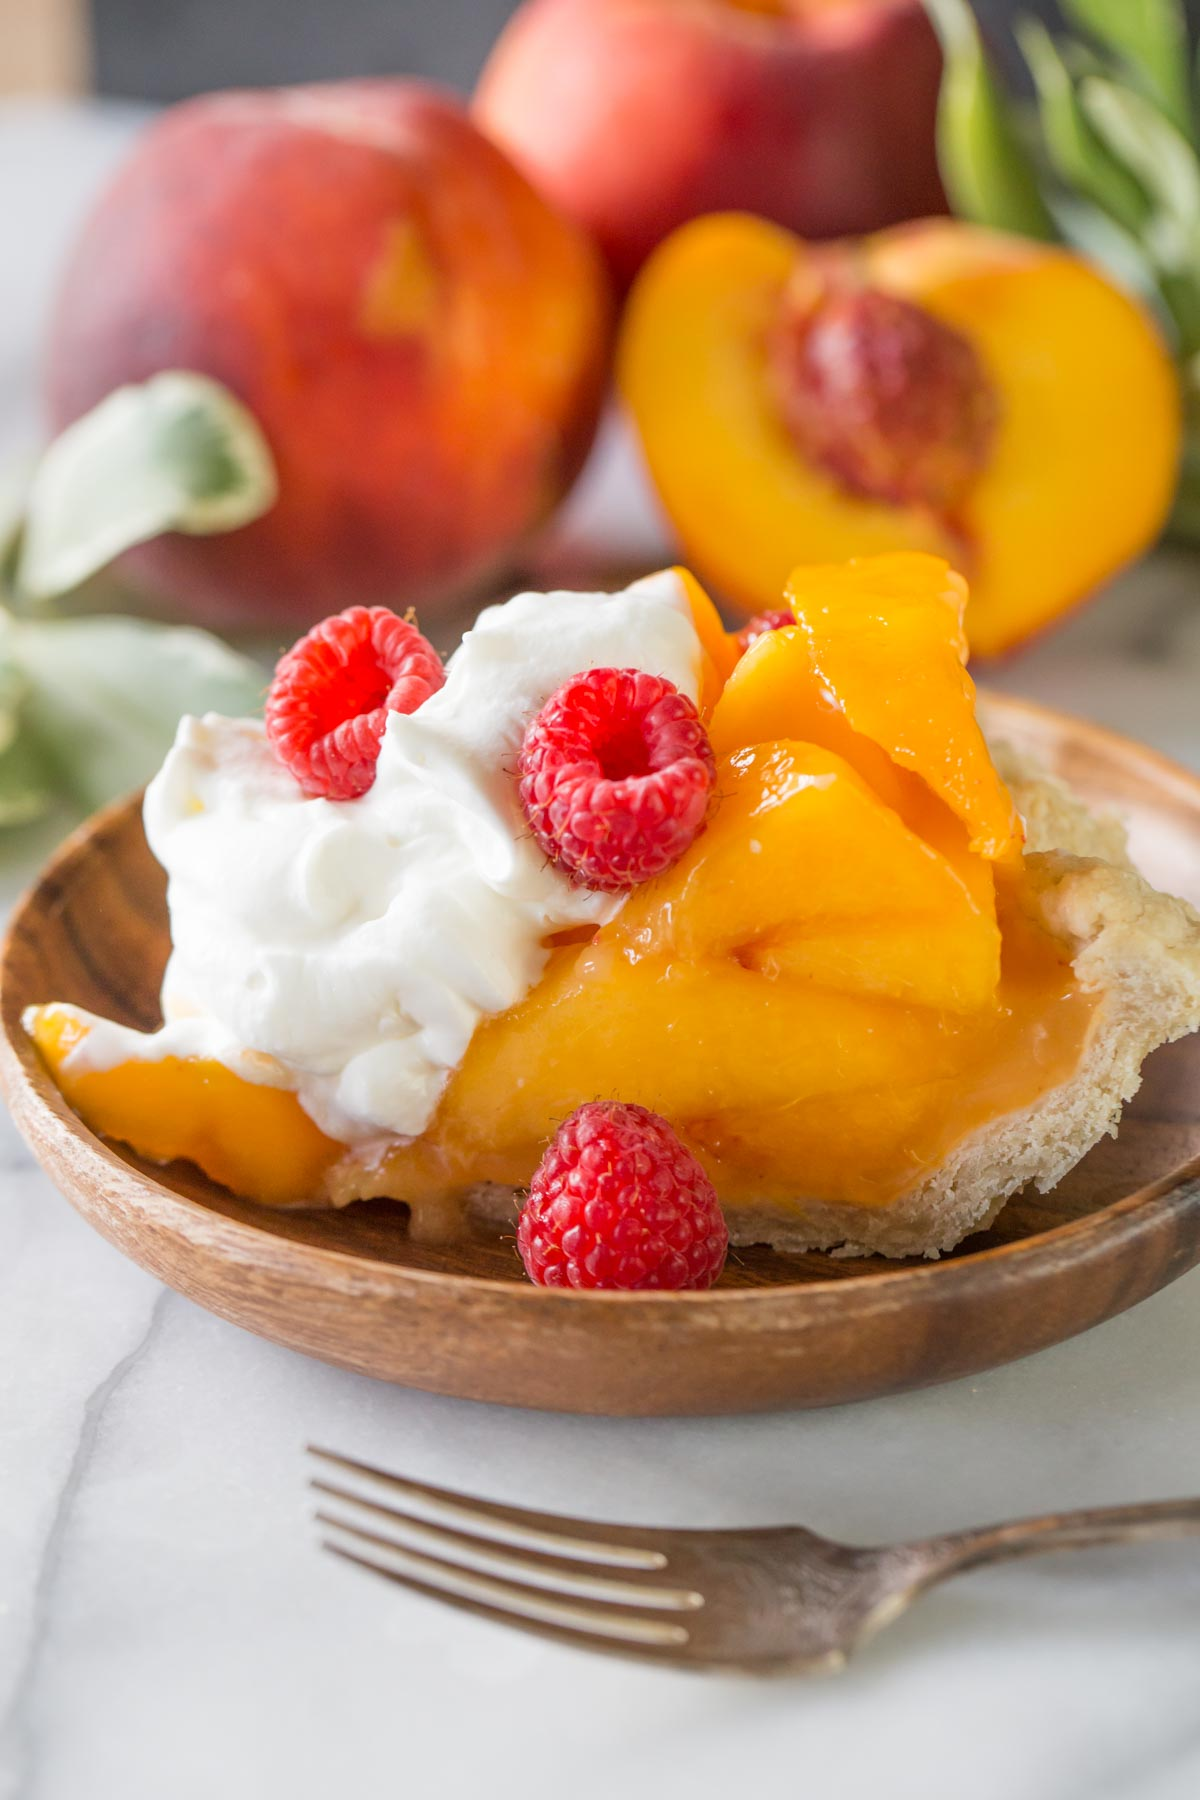 Fresh peach pie with homemade whipped cream in a red pie dish with whole peaches in the background.